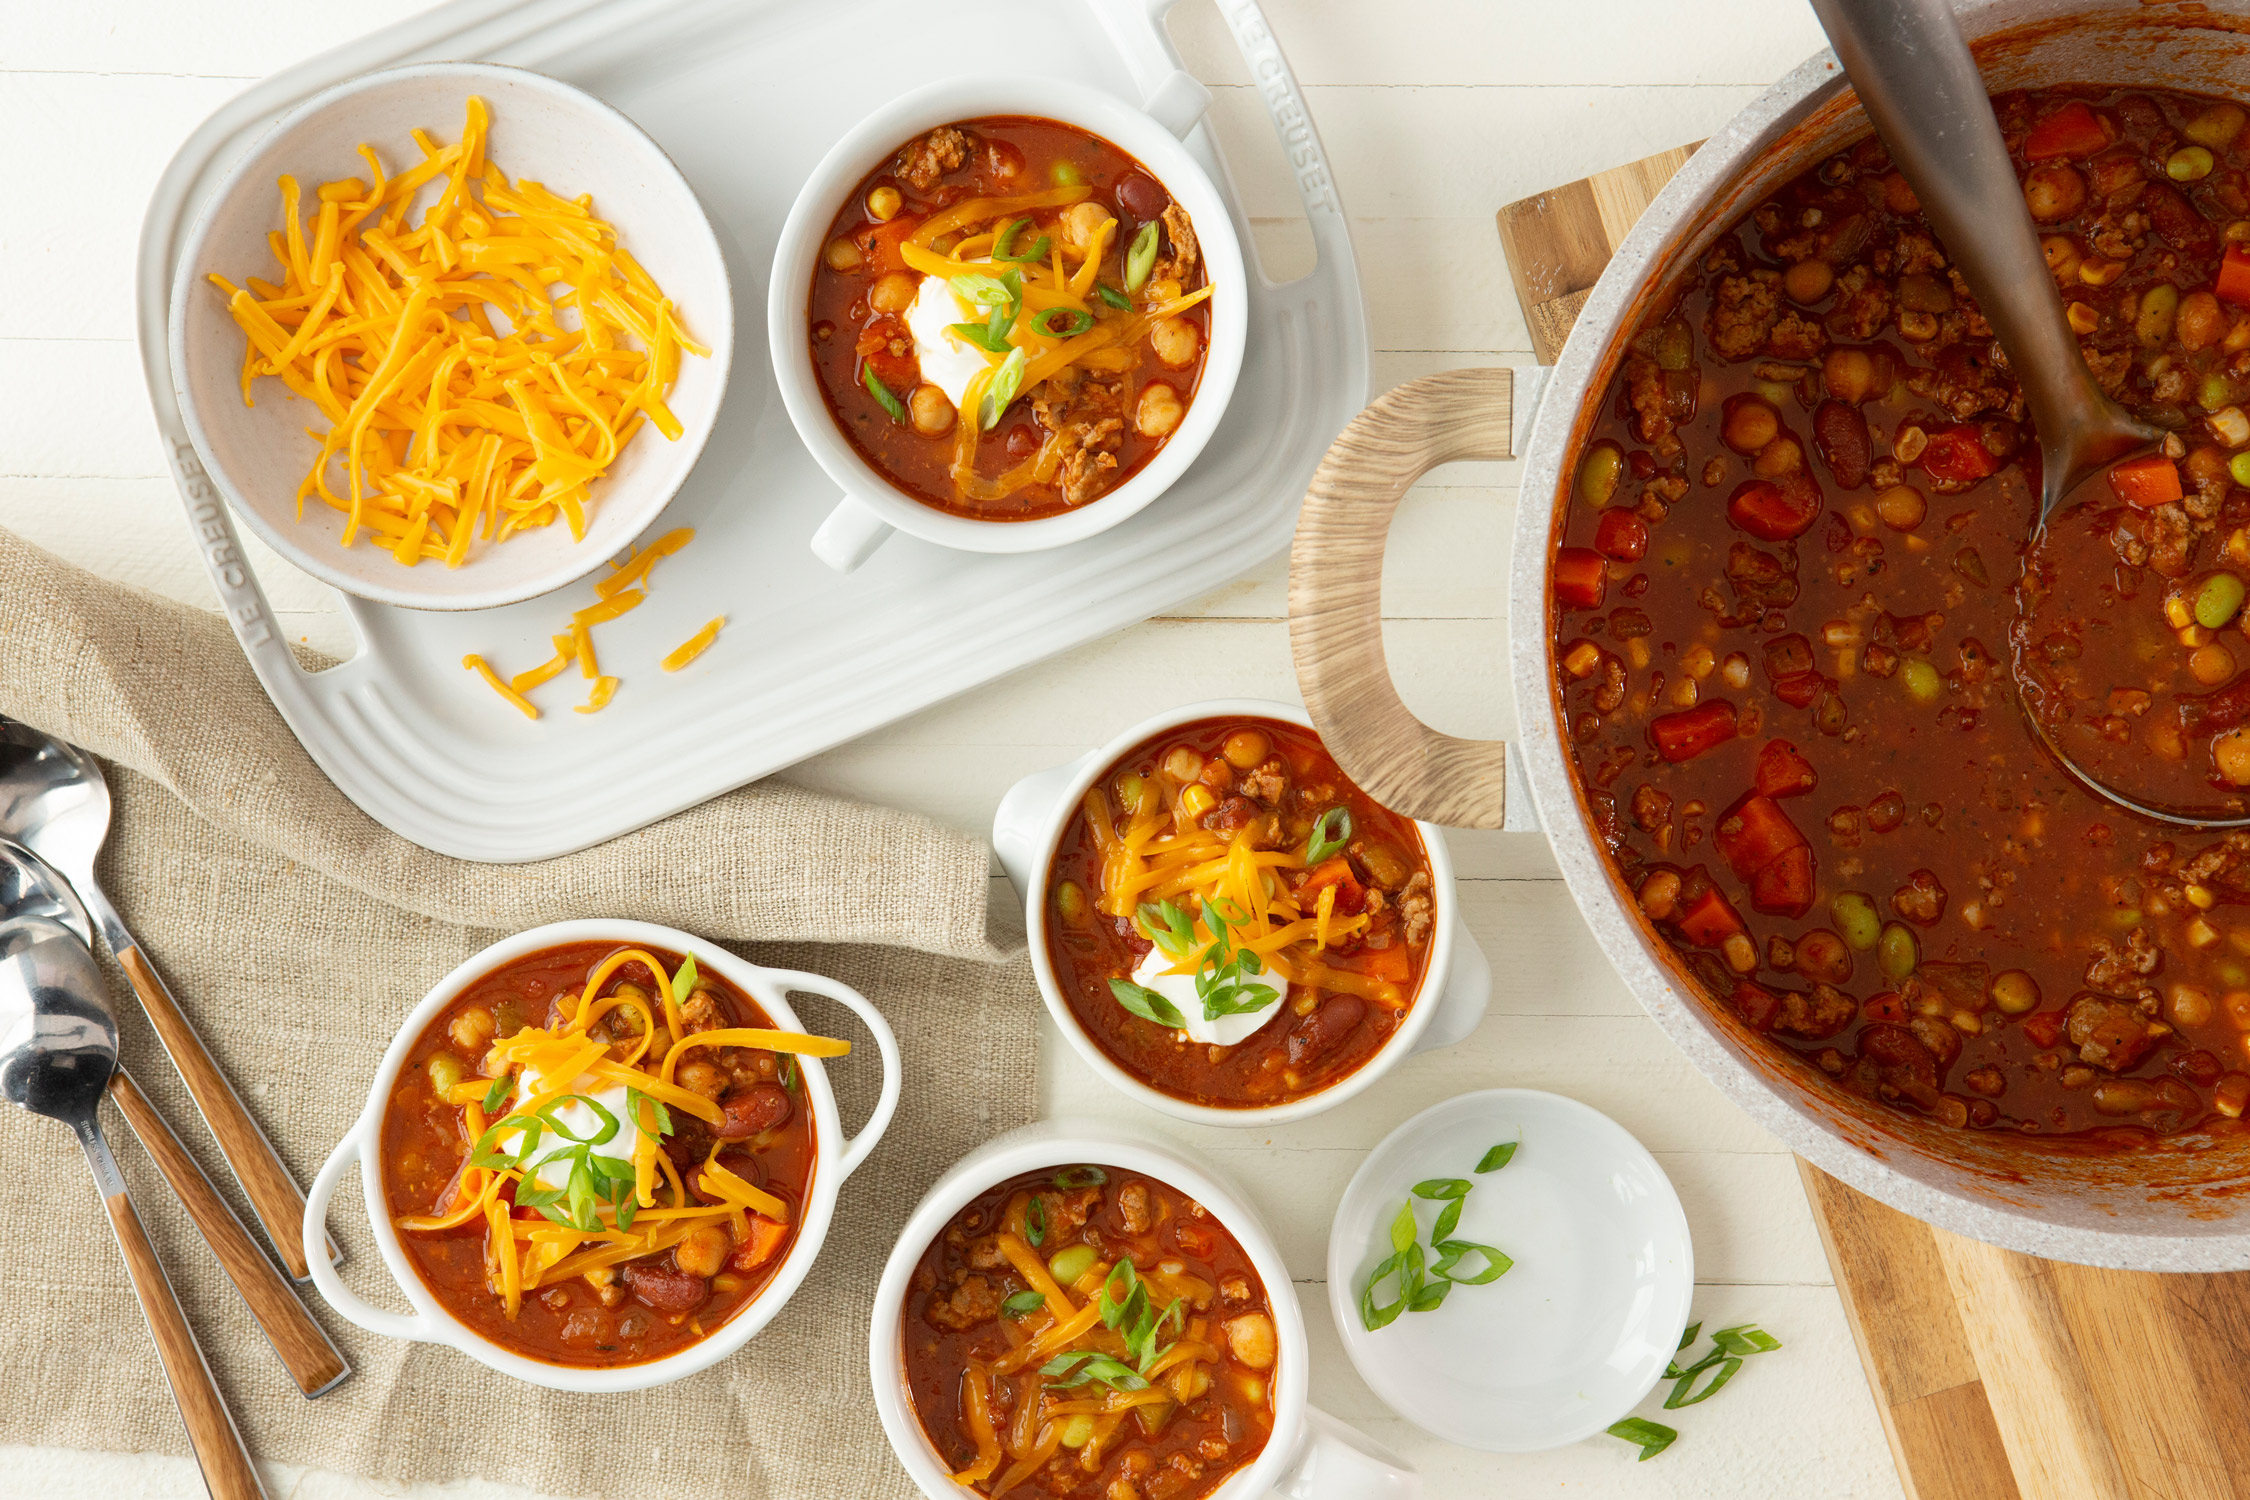 Copycat Turkey Chili